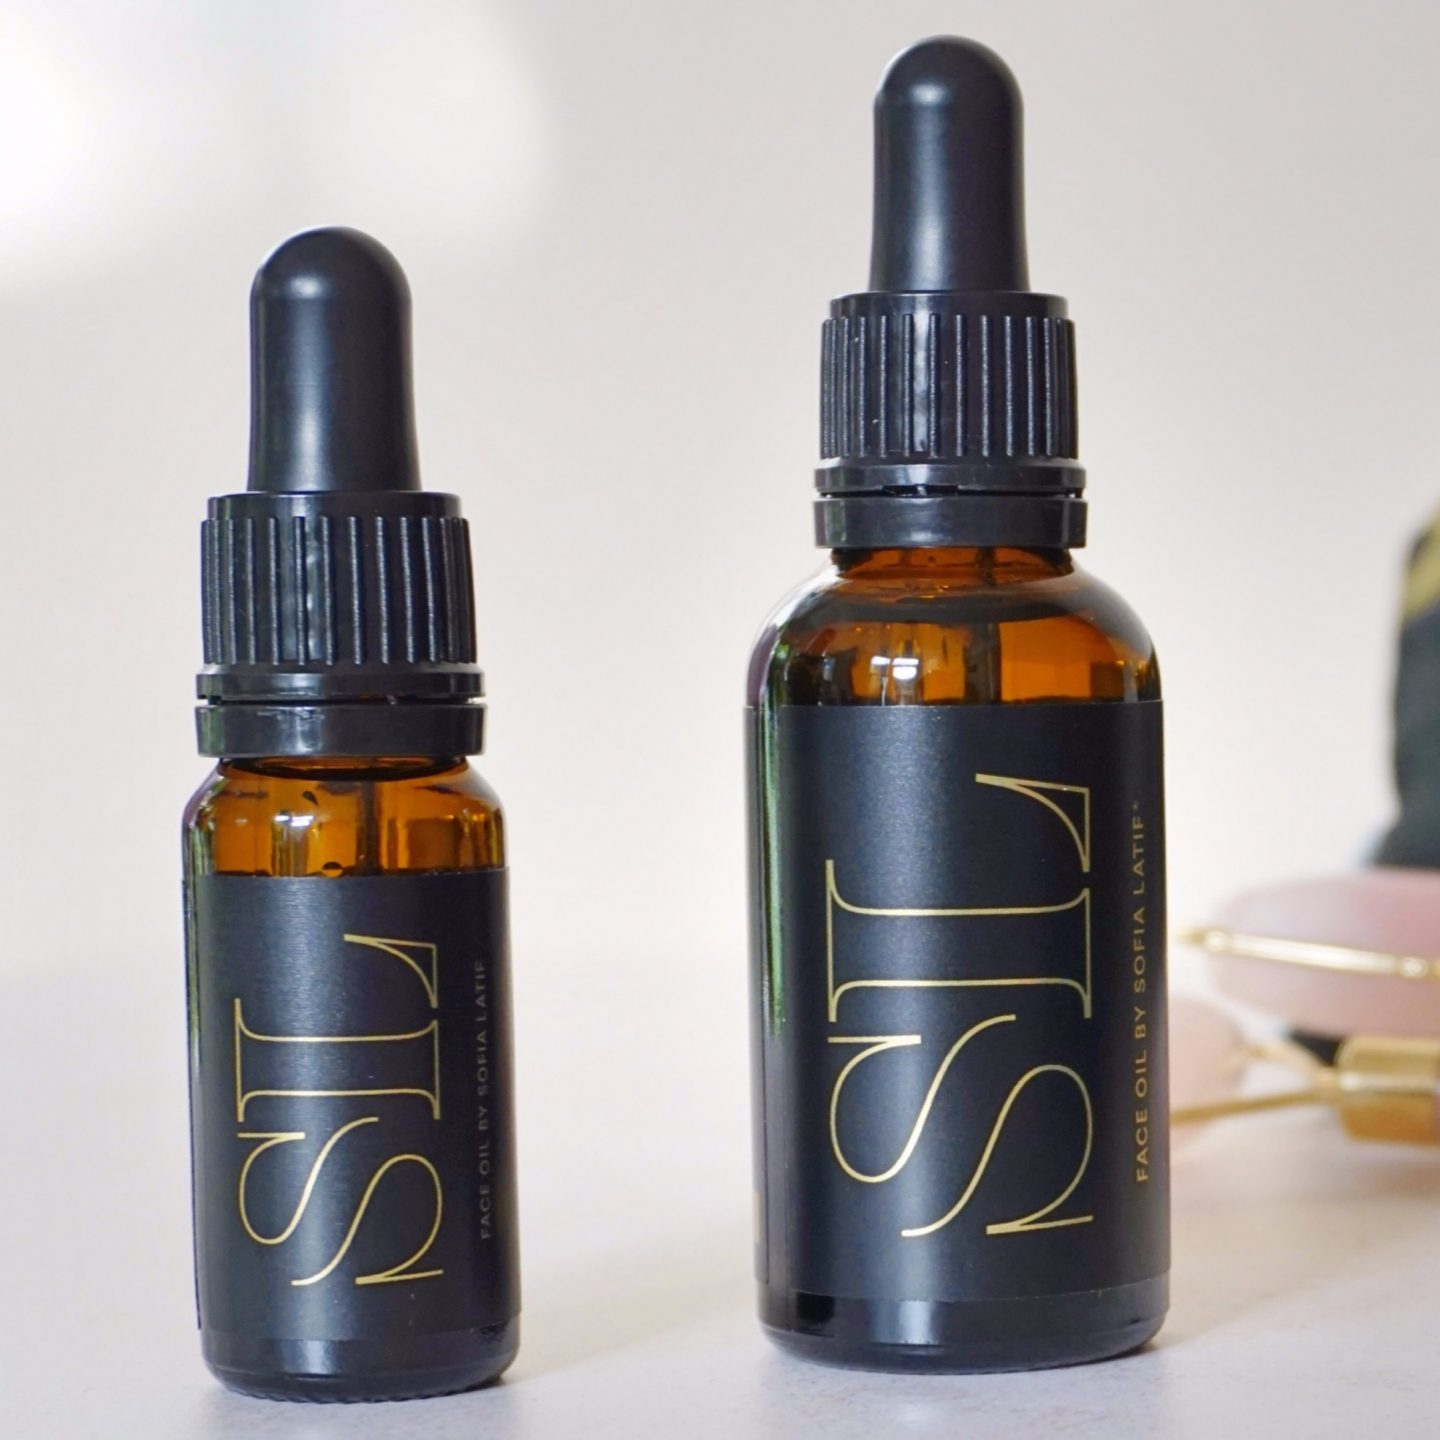 Face oil by Sofia Latif